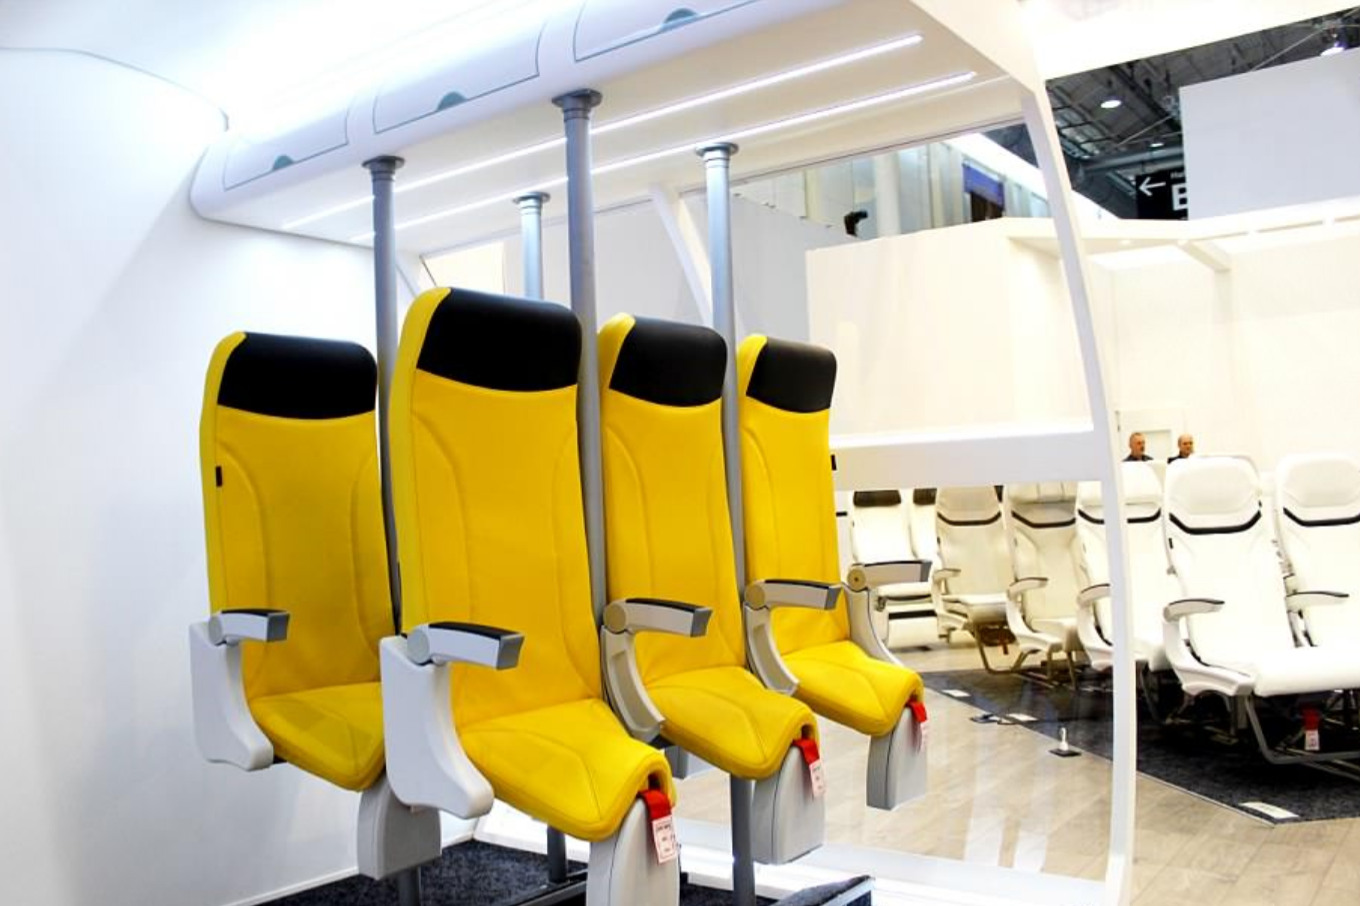 These vertical seats are the latest innovation to increase capacity on airplanes